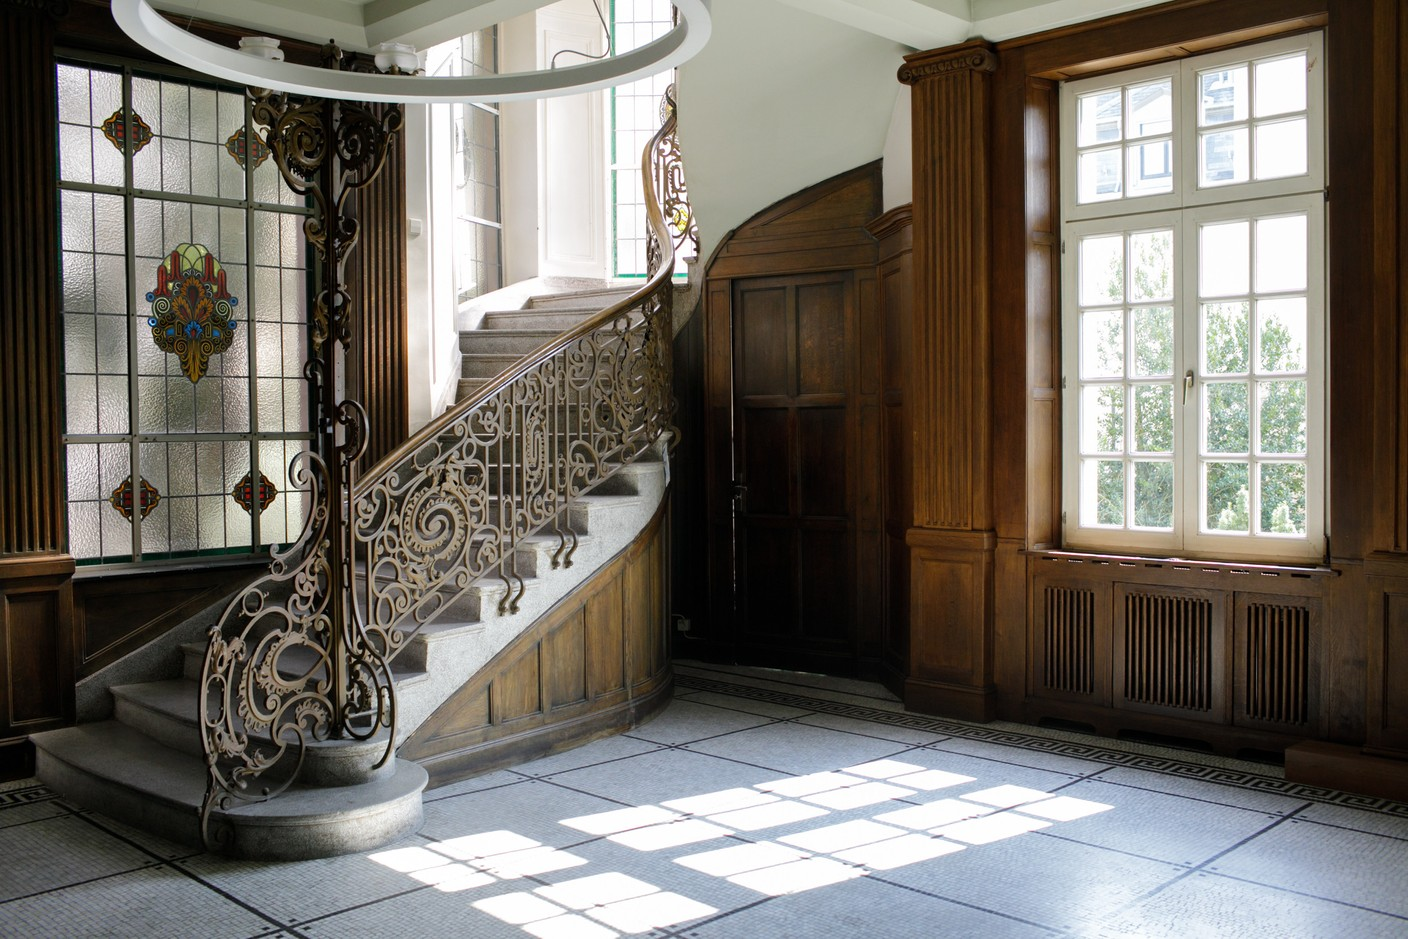 The imposing staircase has survived through the decades but little is known about how the interior looked originally Matic Zorman / Maison Moderne